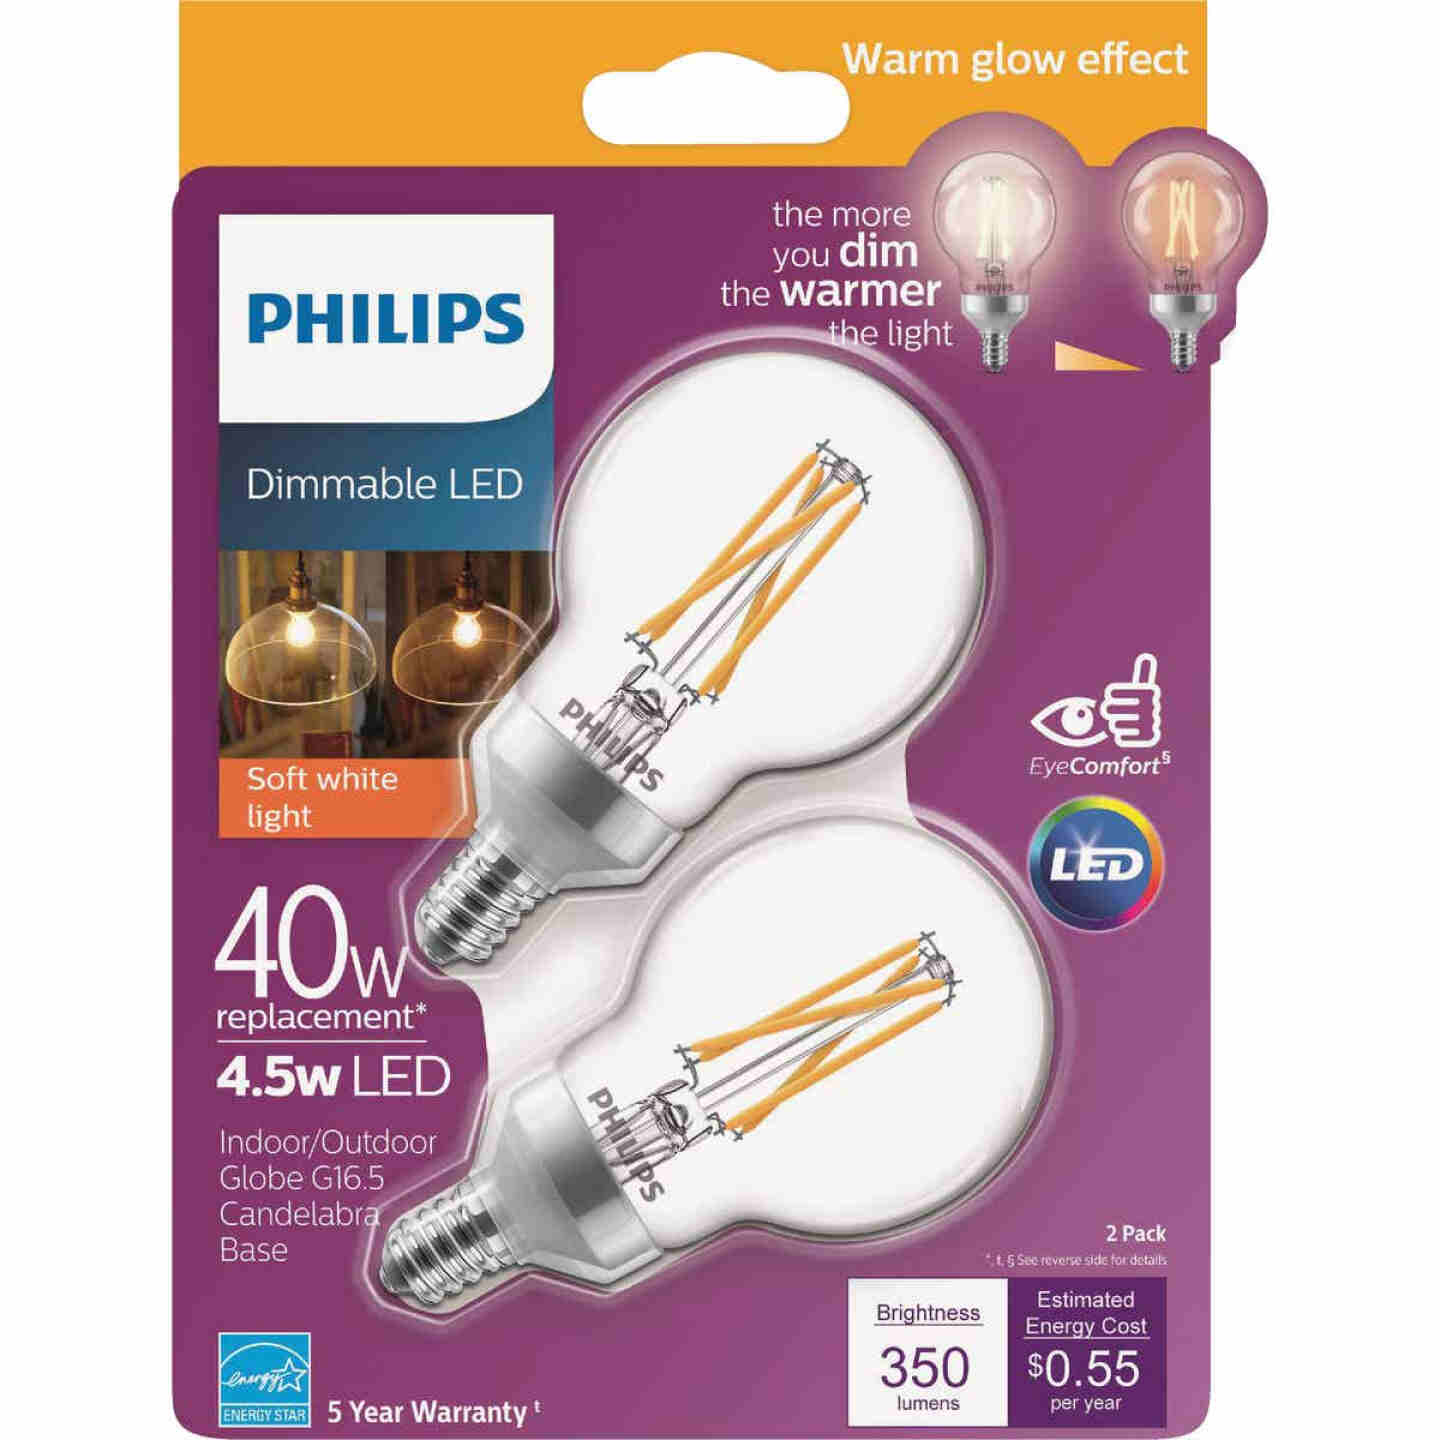 Philips Warm Glow 40W Equivalent Soft White G16.5 Candelabra Dimmable LED Decorative Light Bulb (2-Pack) Image 1